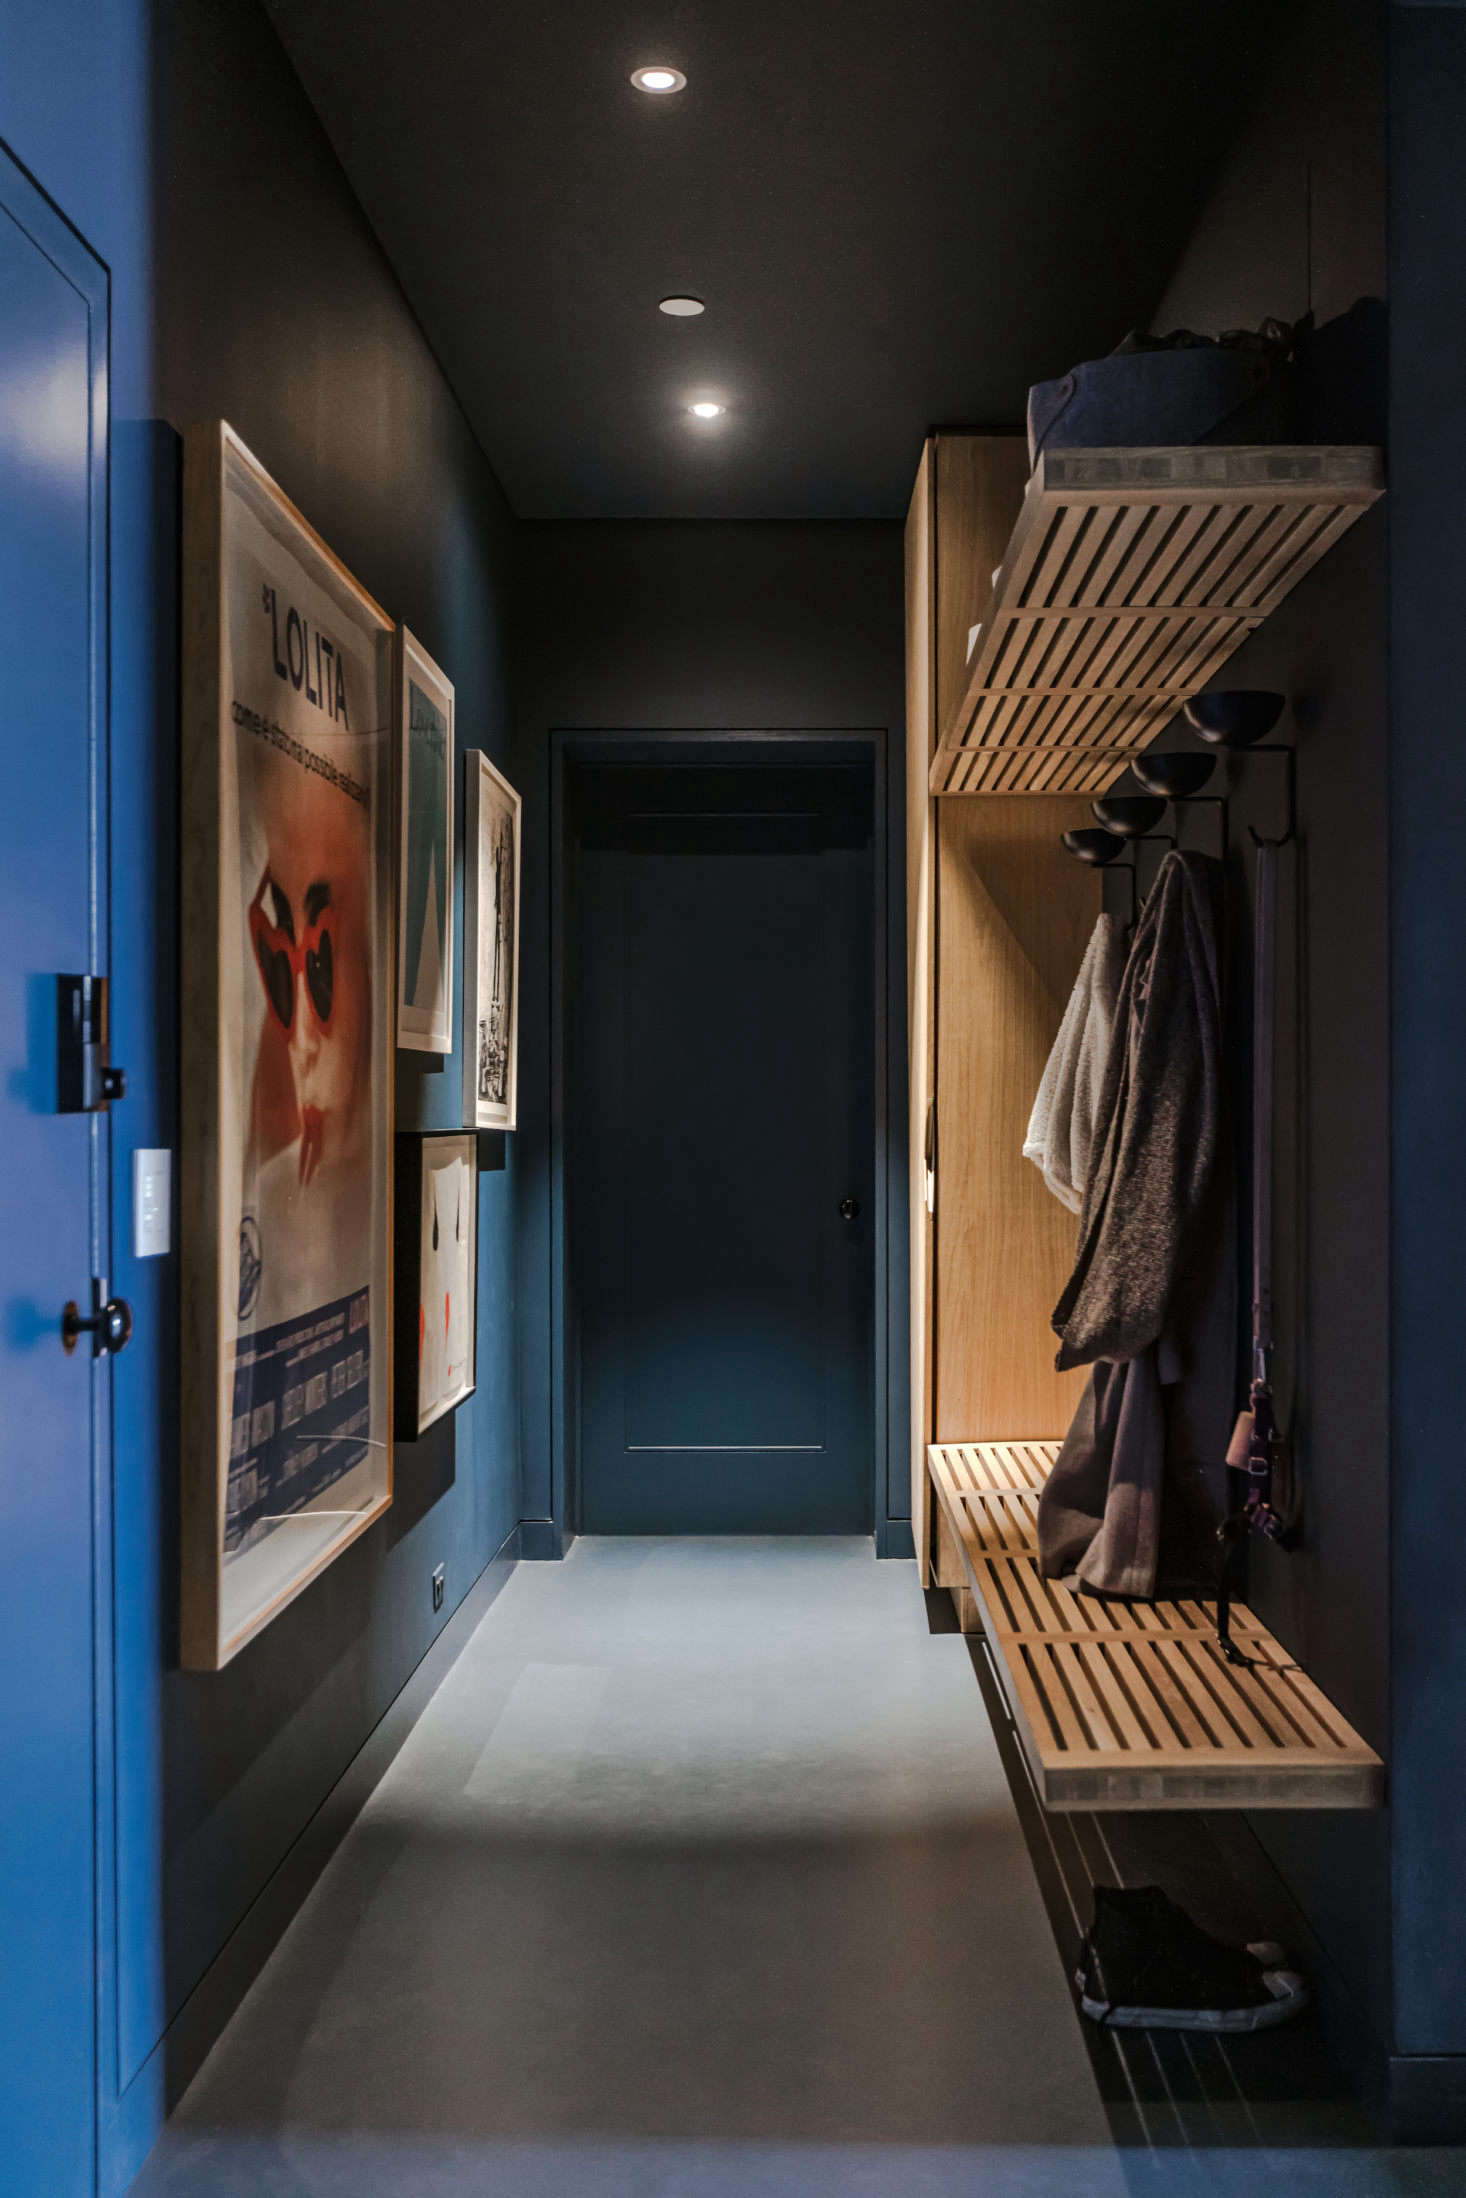 The deep layout of the combined apartments meant that some spaces were bathed in natural light while others were set far back from the banks of windows. The solution? Embracing the dark. The entryway is furthest from the windows, so it got a wash of blue paint on the walls and dark blue linoleum on the floor.